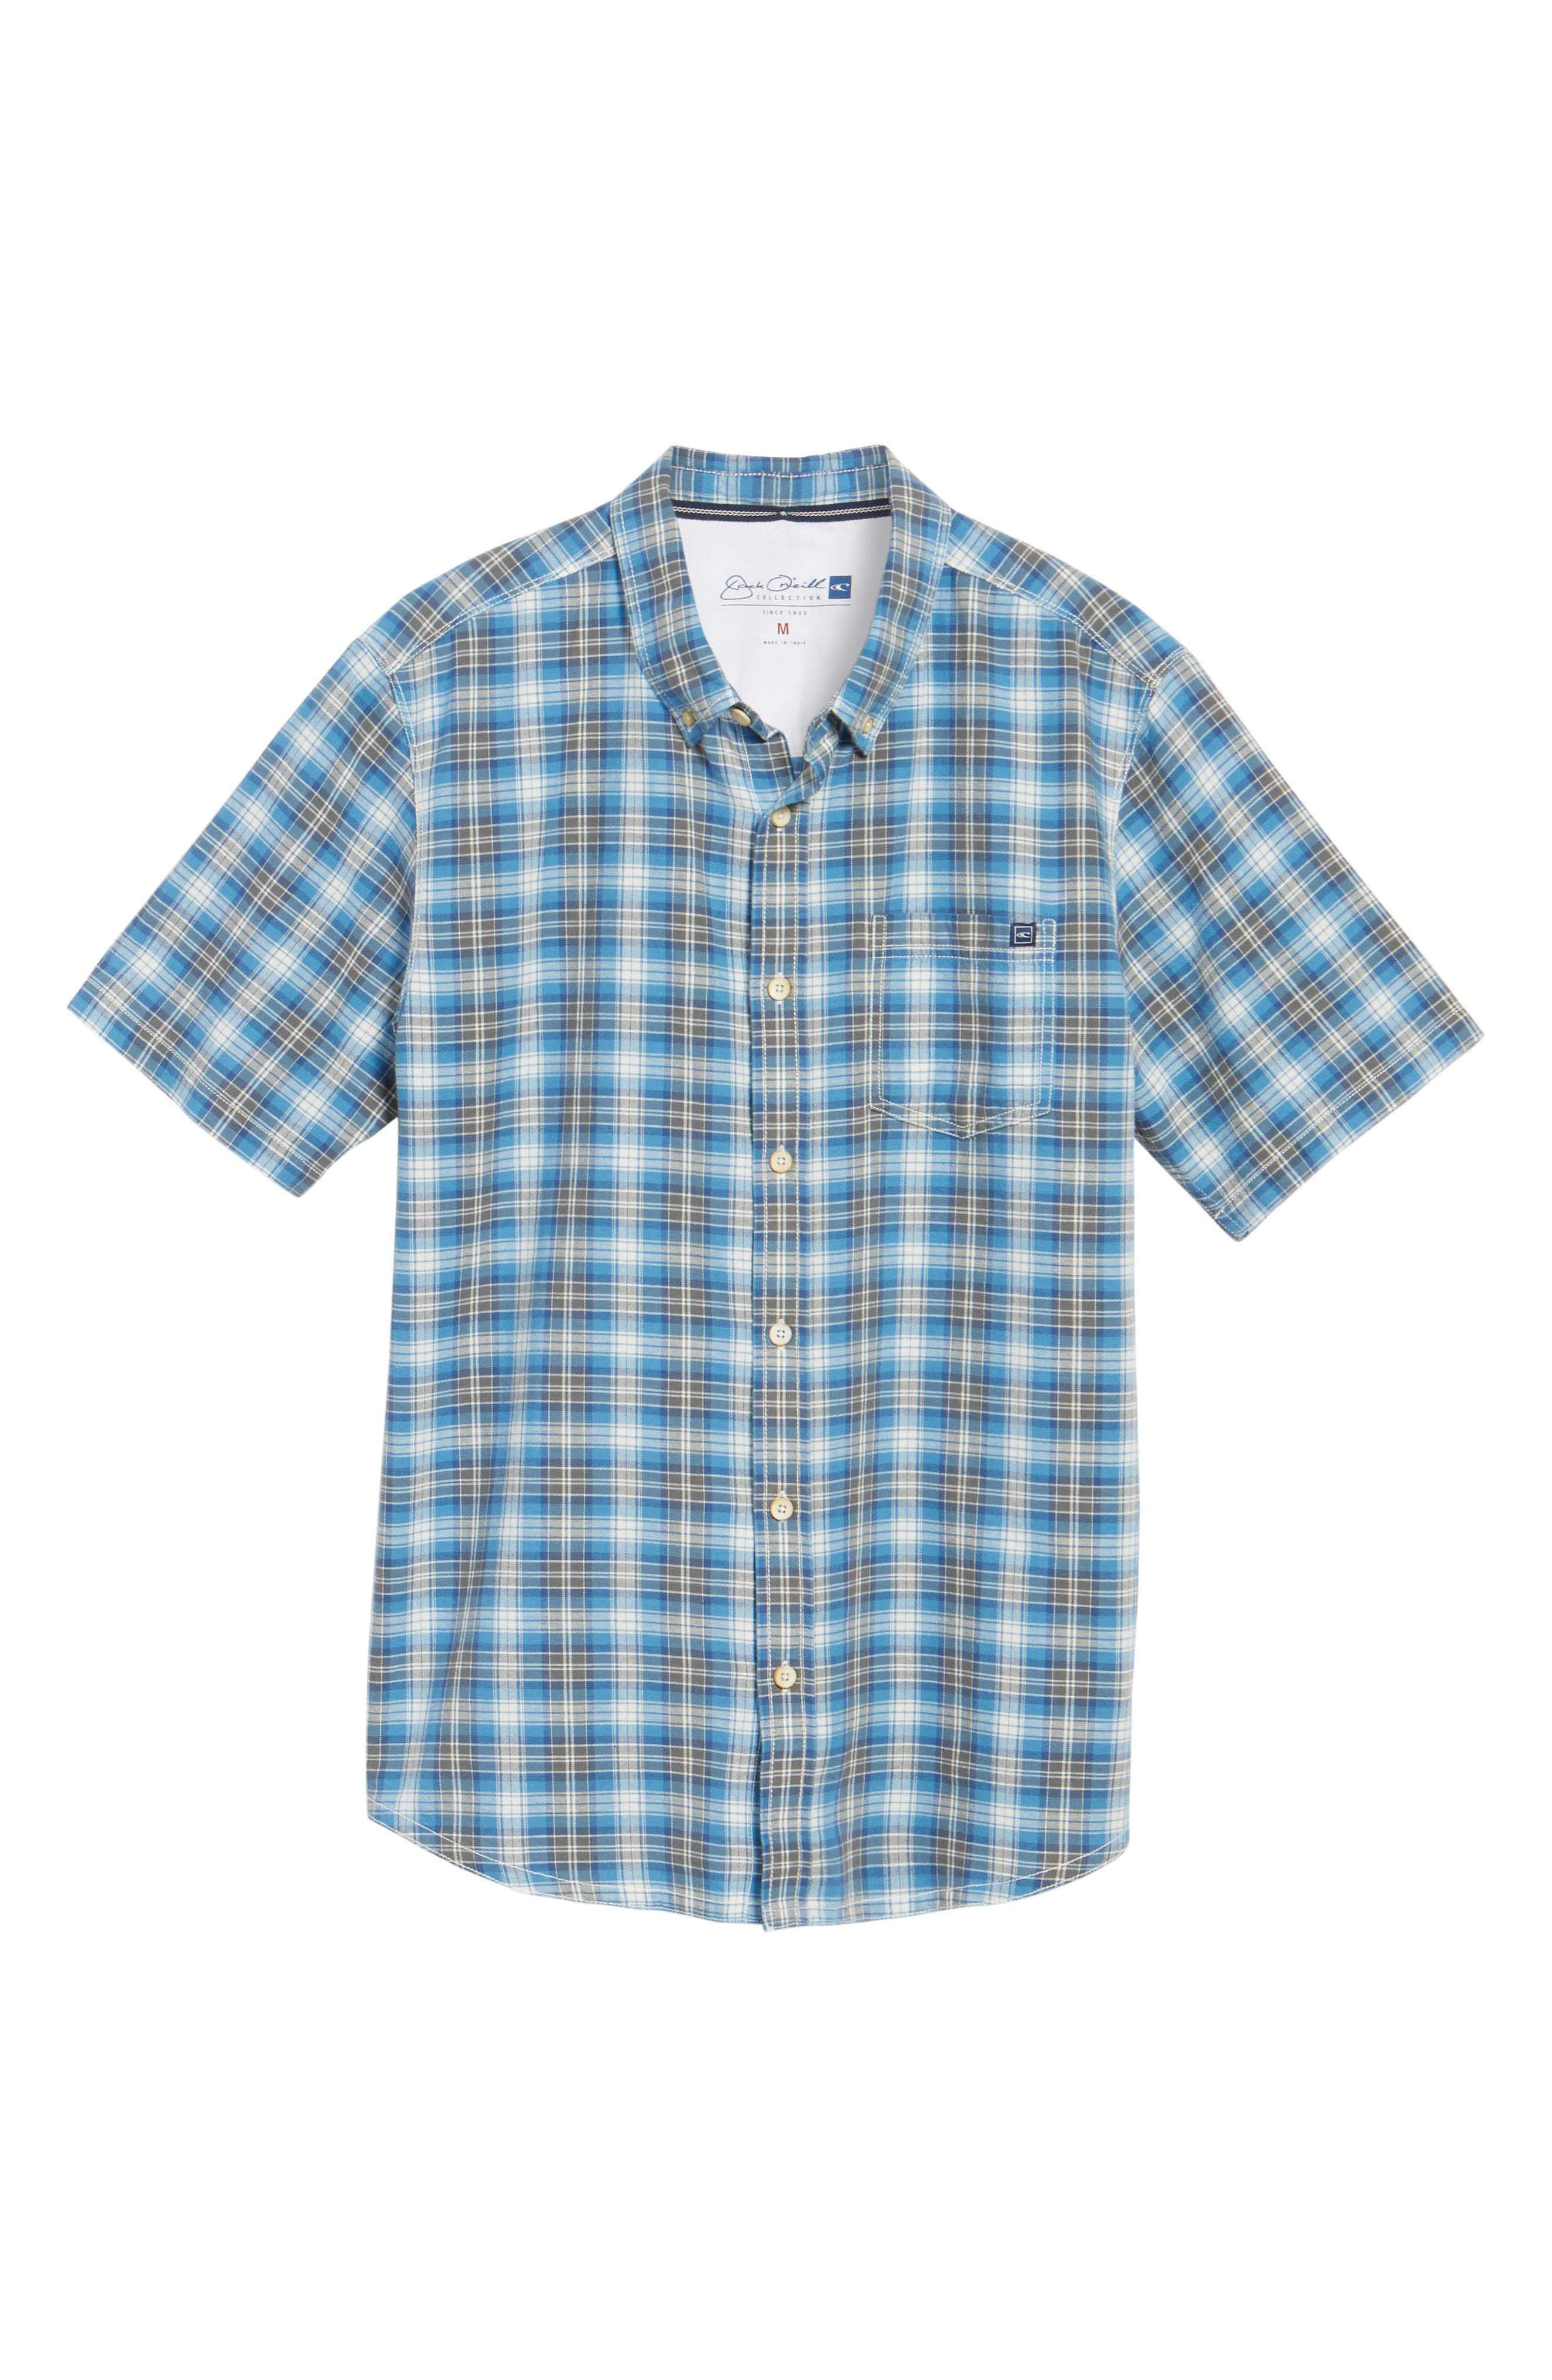 Voyager Plaid Sport Shirt,                             Alternate thumbnail 12, color,